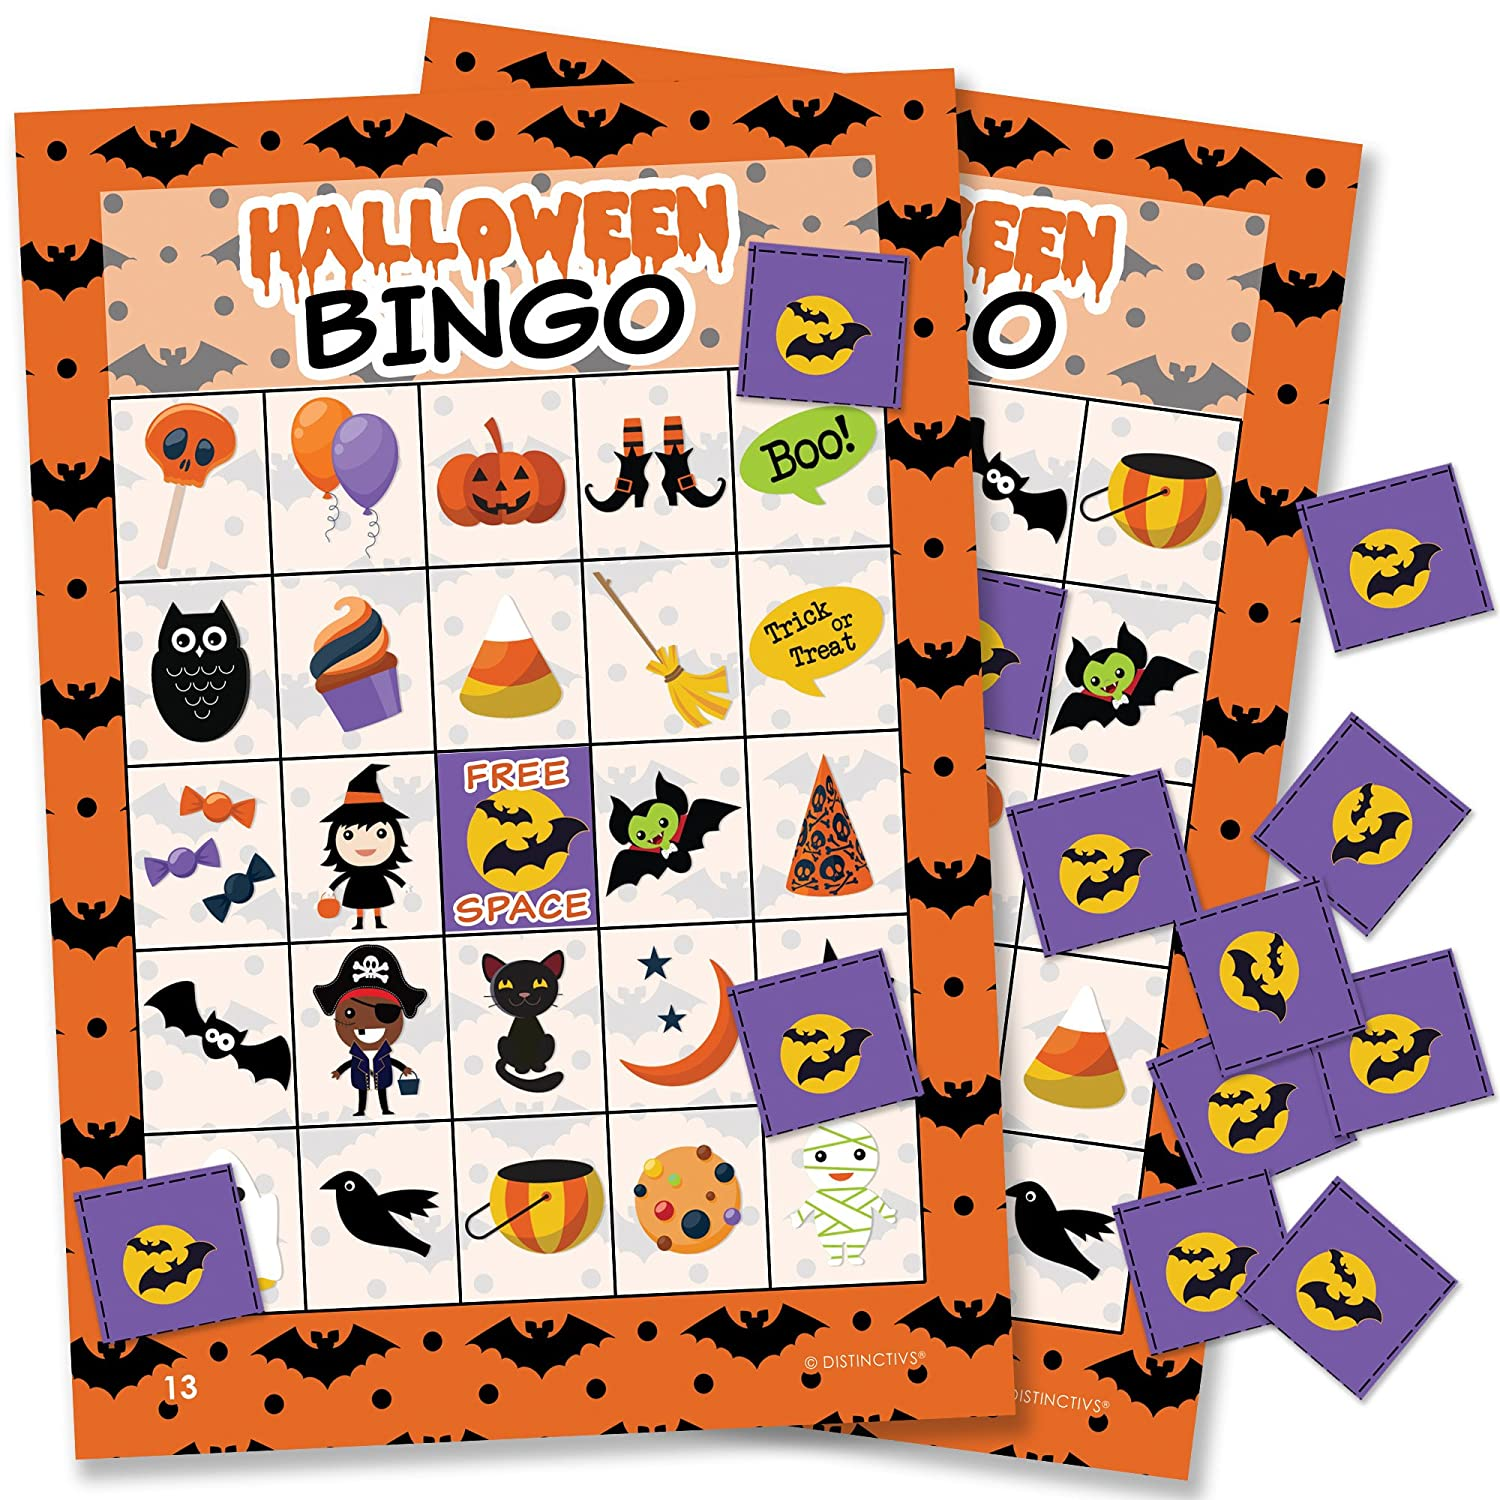 photo regarding Printable Halloween Bingo Cards identify Halloween Bingo Sport for Small children - 24 Avid gamers